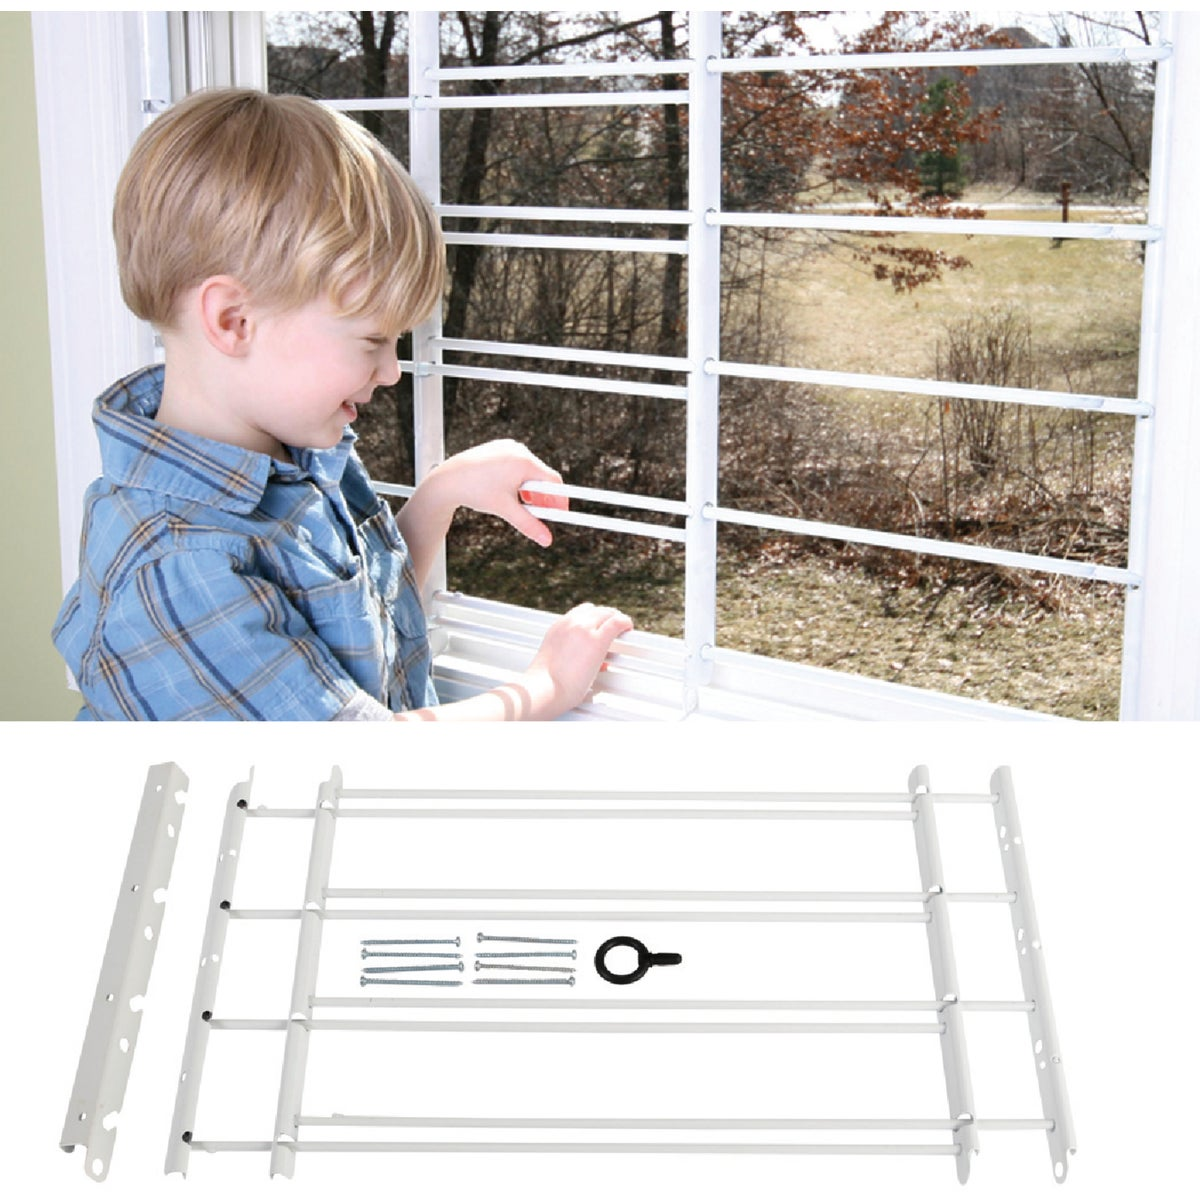 4-BAR WINDOW GUARD